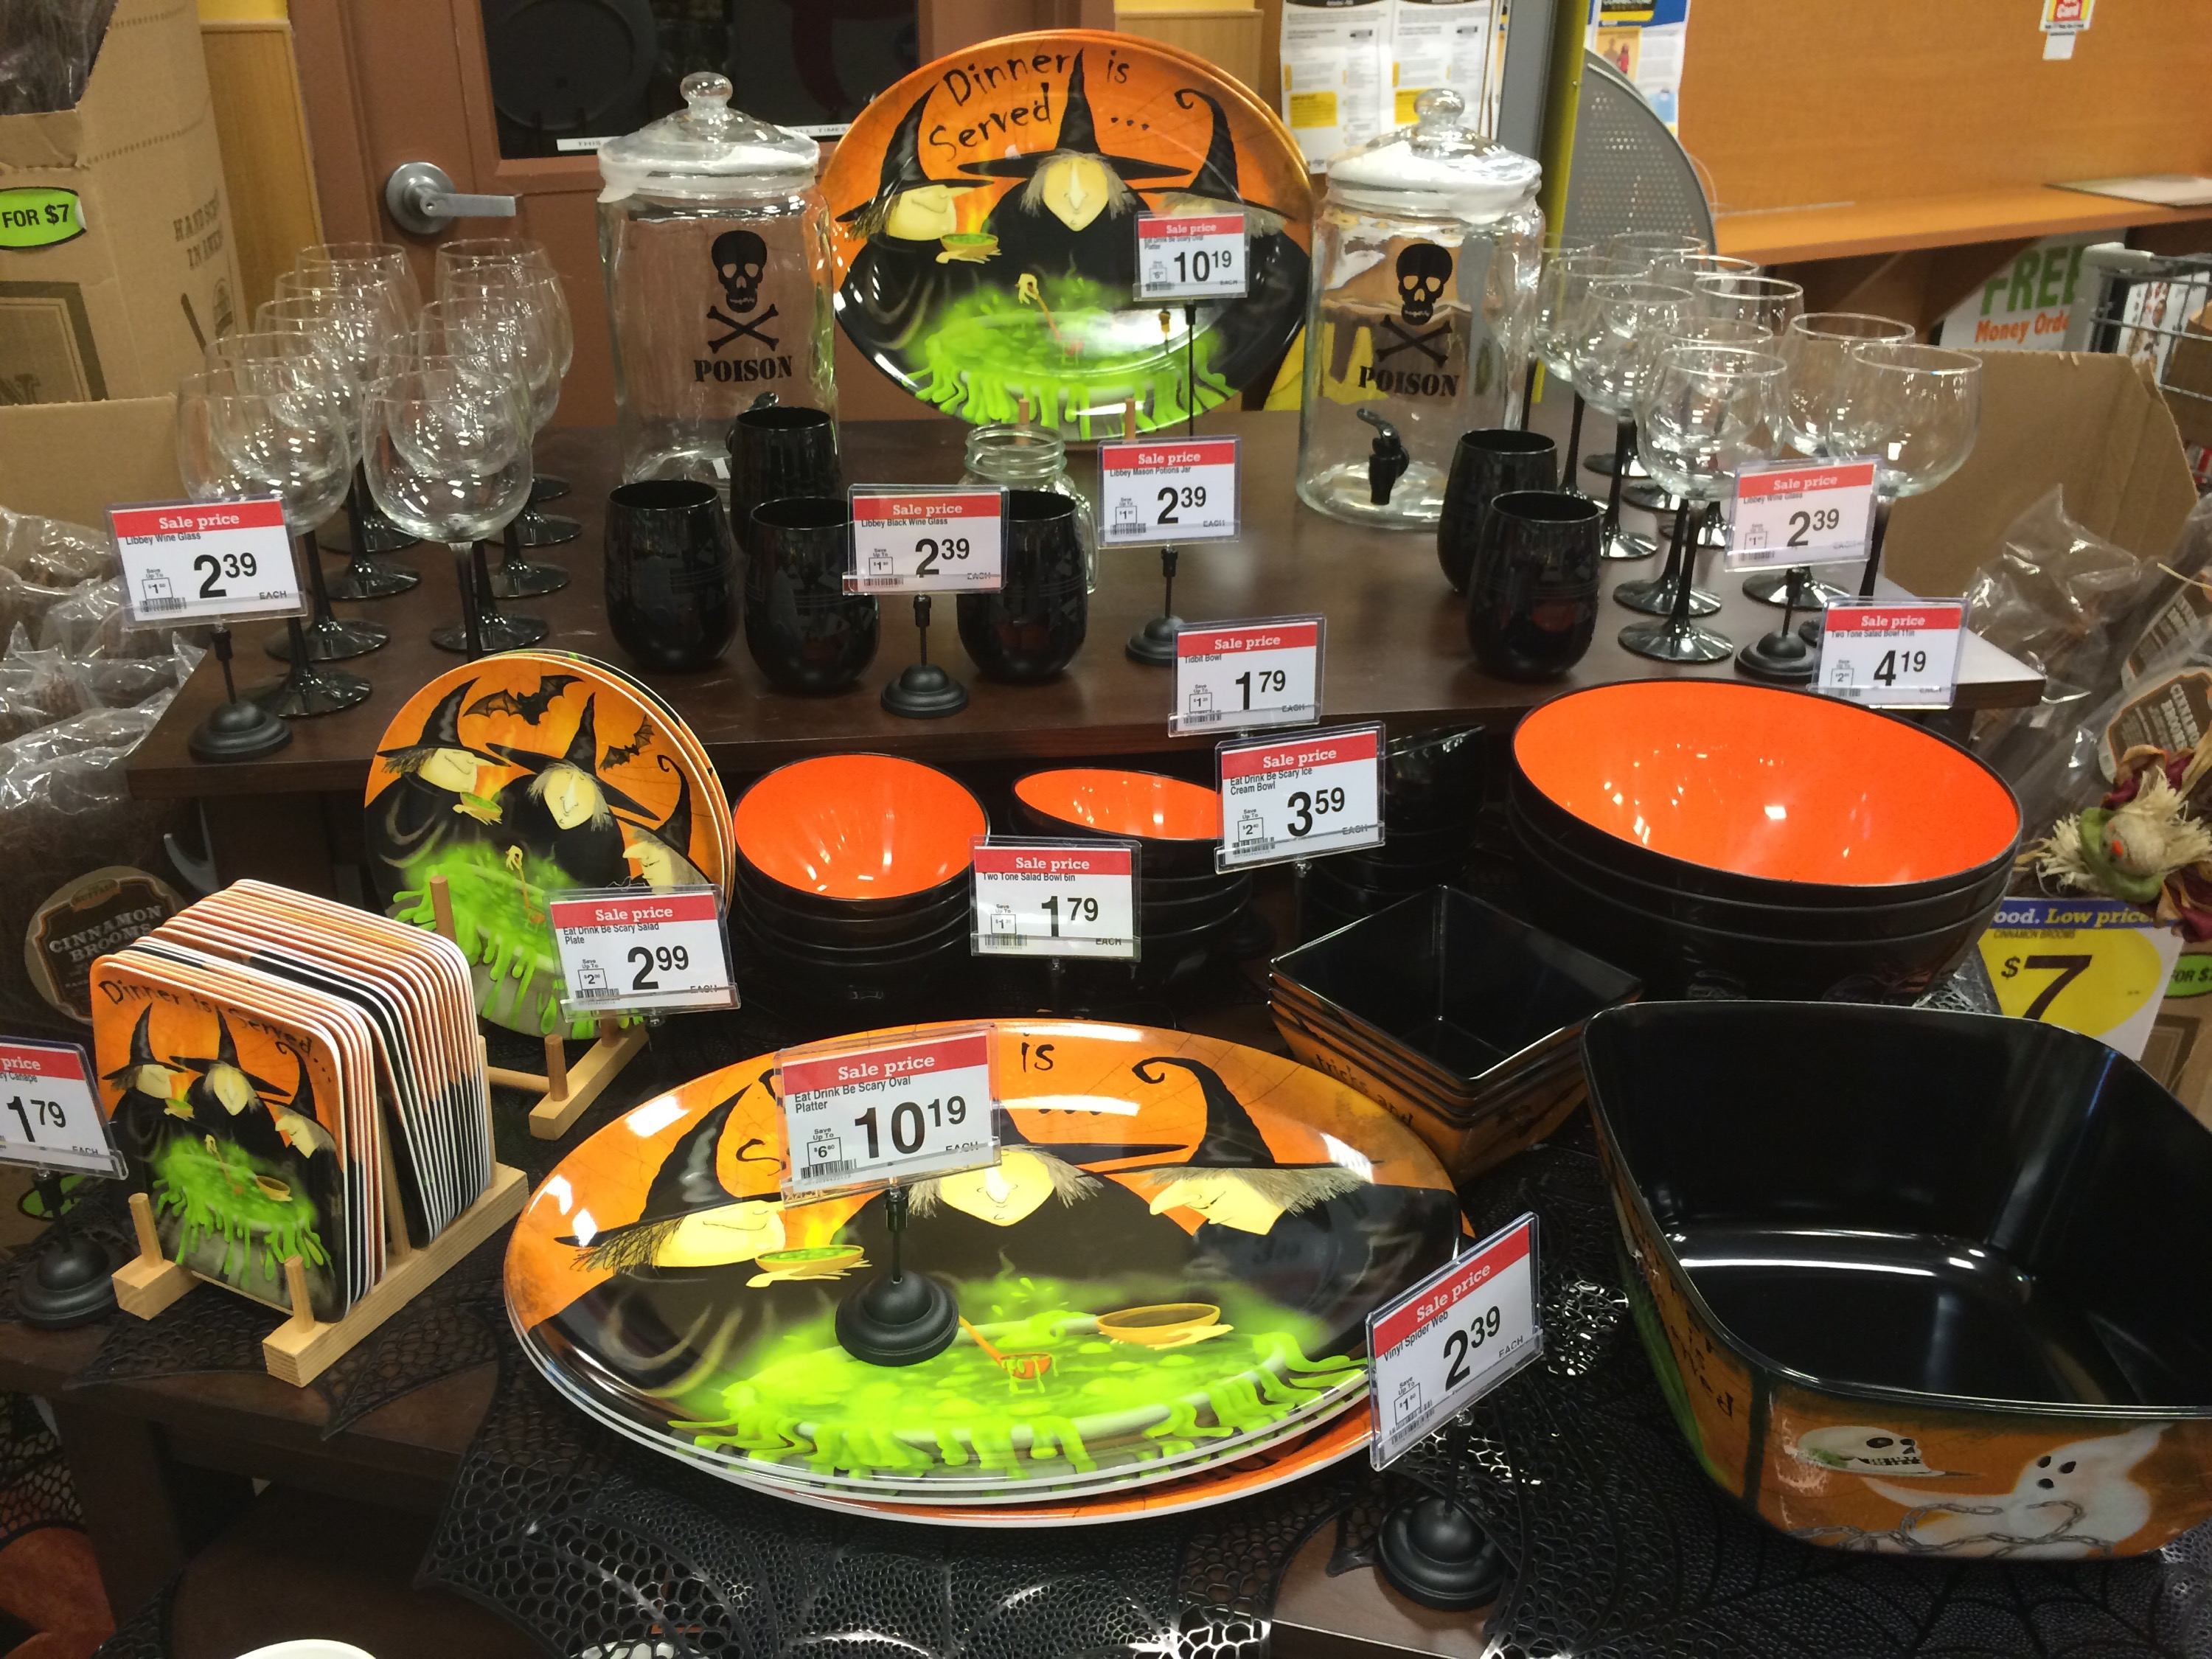 adorable halloween decorations mugs glassware plates 40 off at kroger